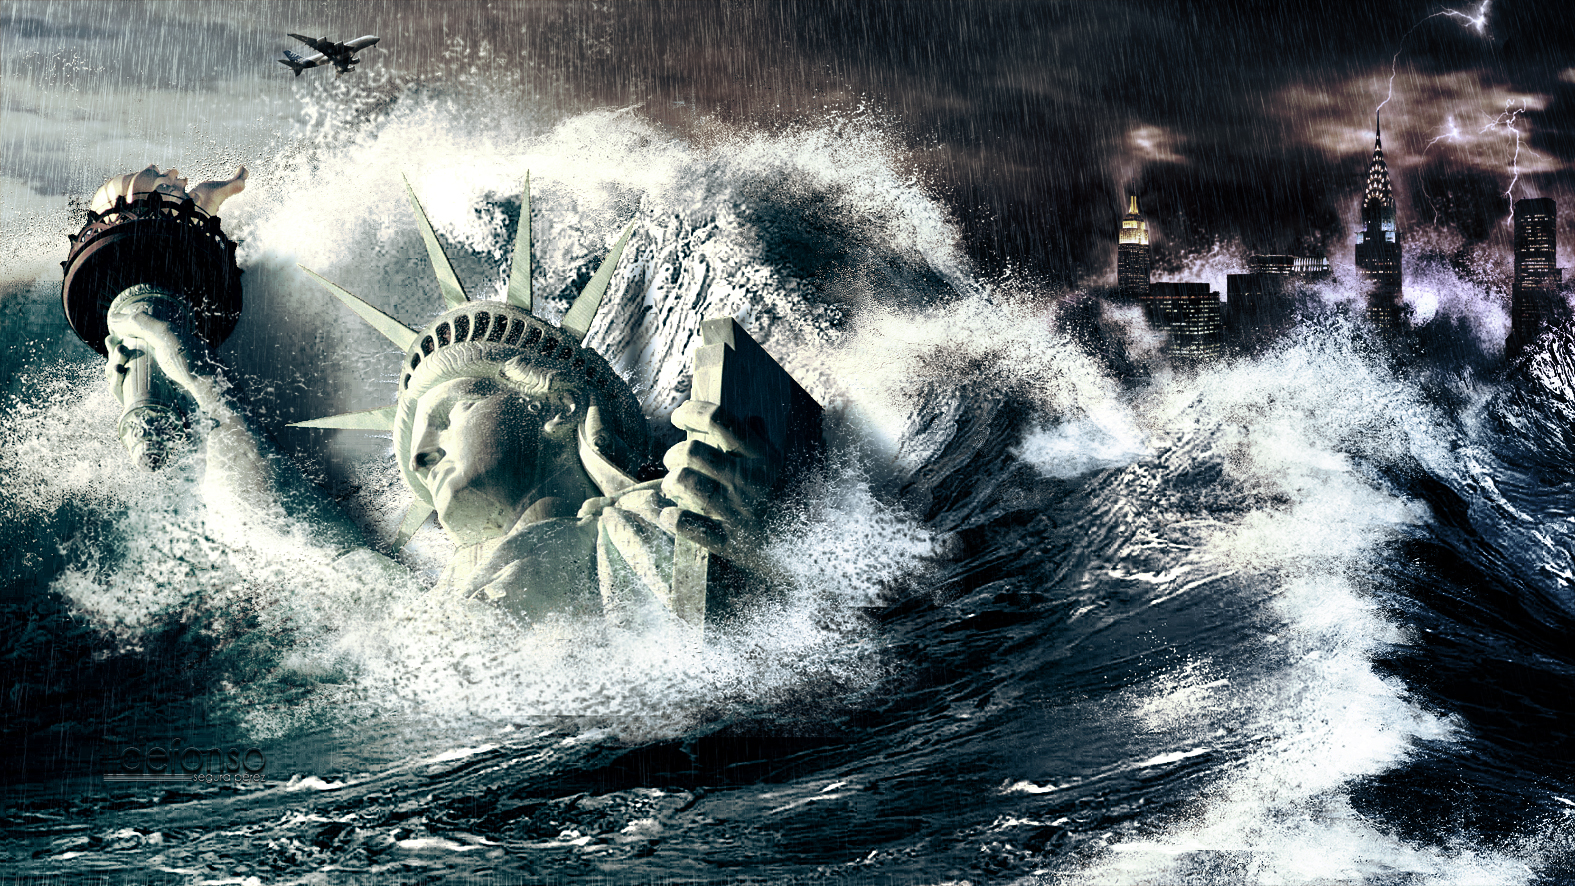 Tutorial Photoshop // Wallpaper Tsunami en New York